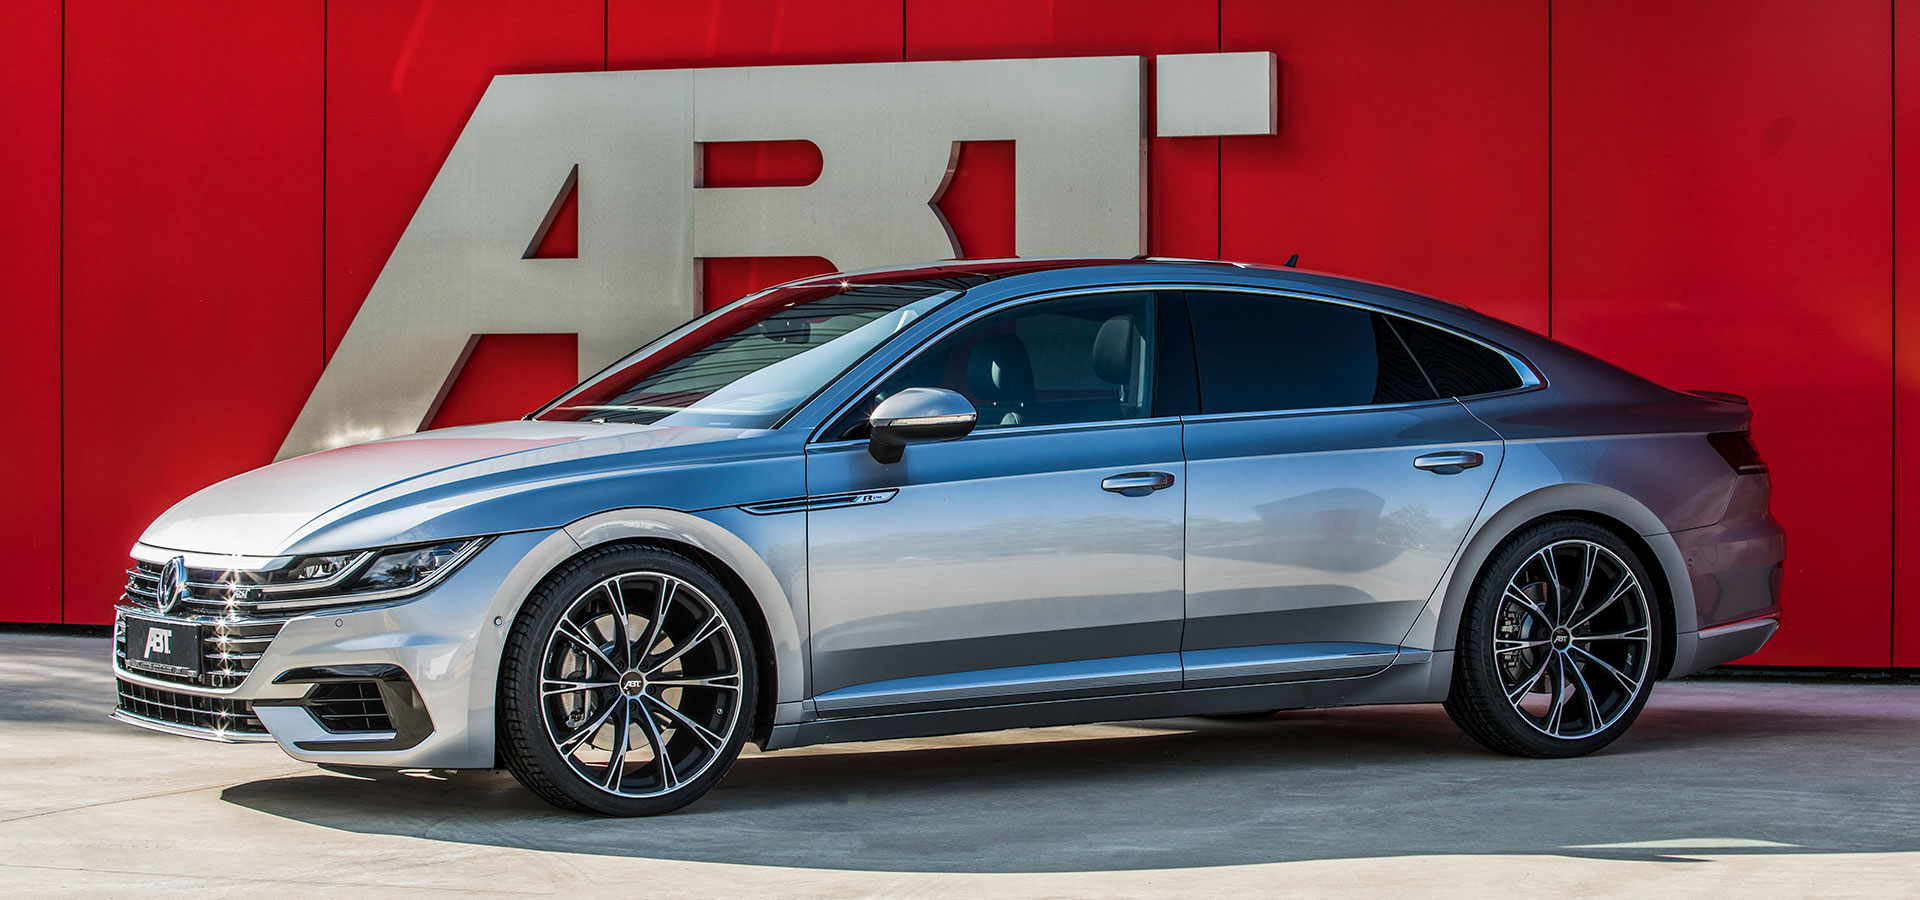 For VW dealerships and country importers, ABT Sportsline has already  developed and built several special sports models.